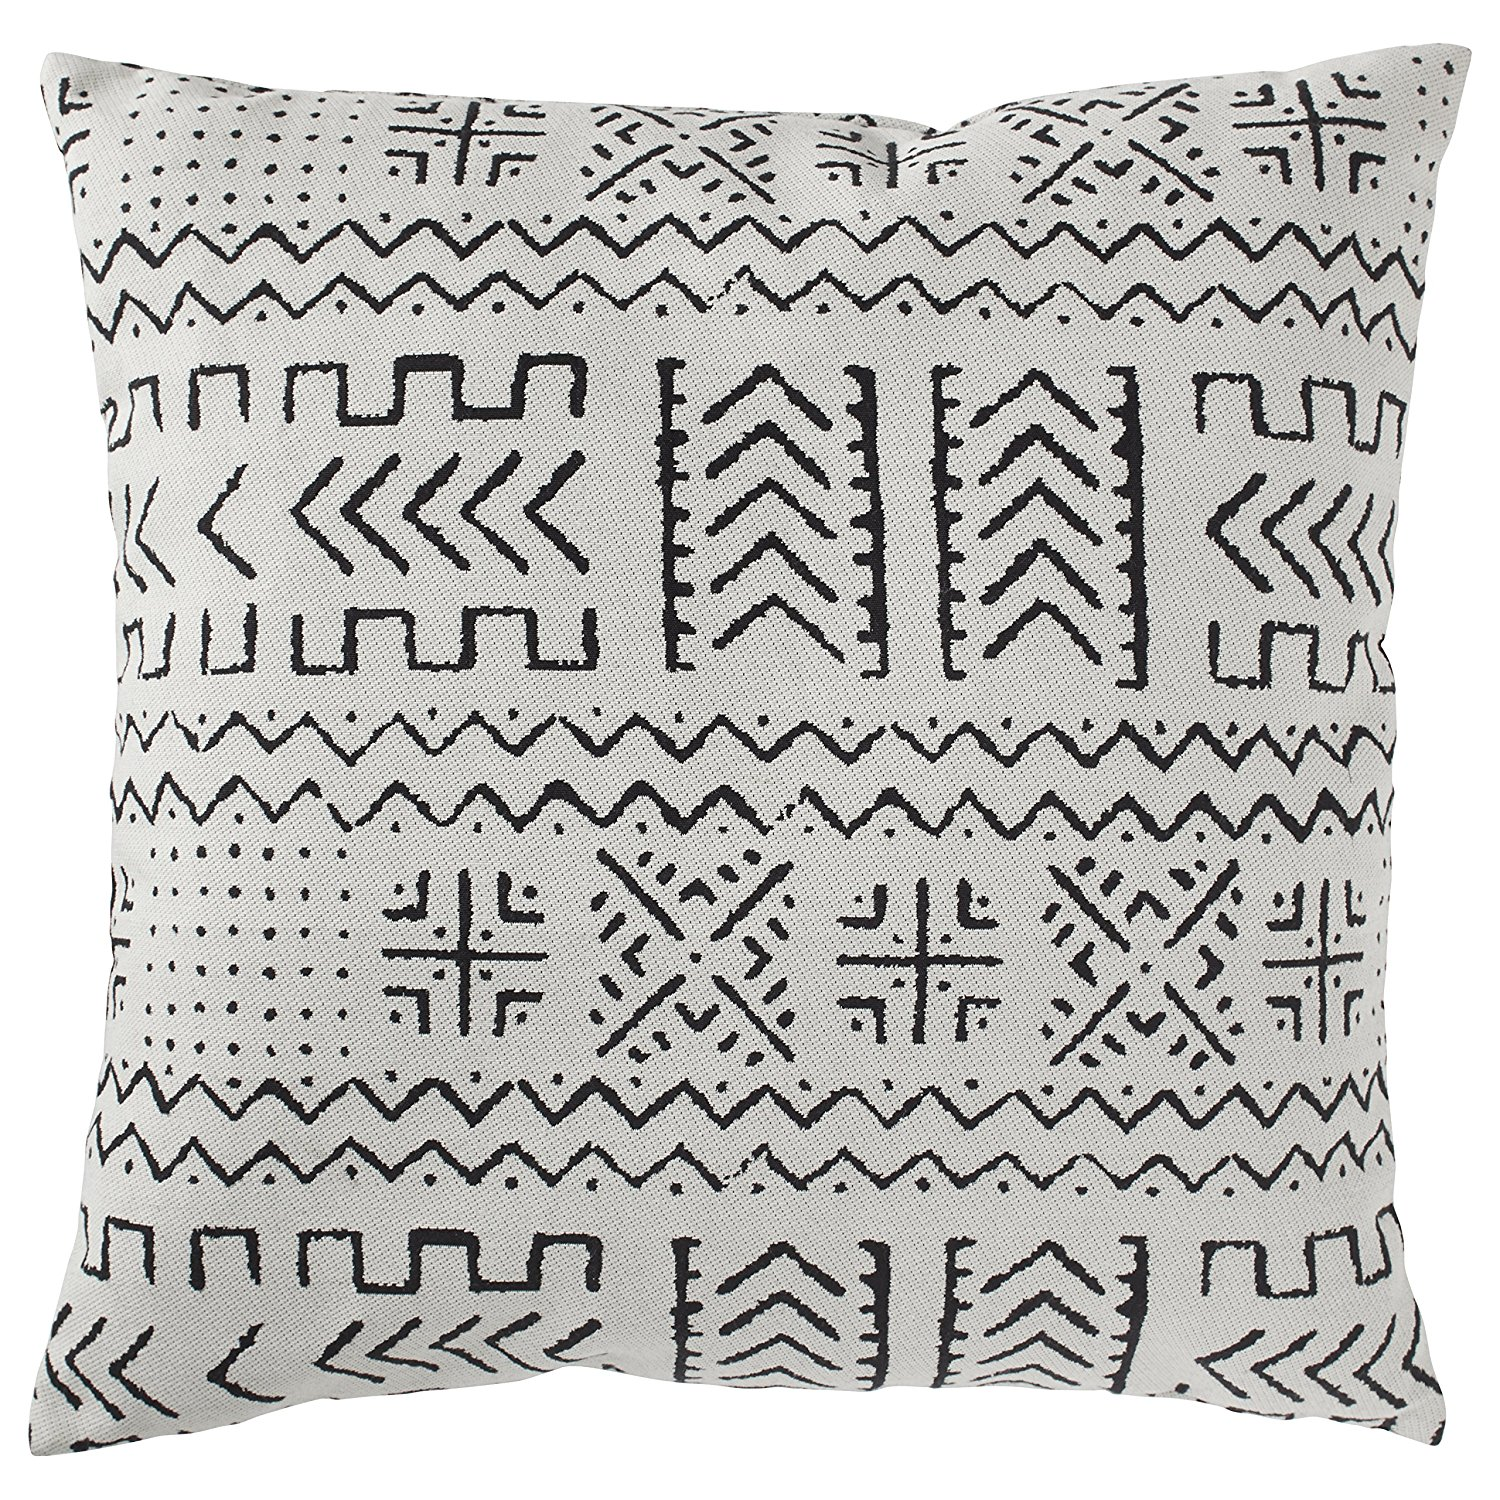 Rivet Mudcloth-Inspired Pillow on Amazon